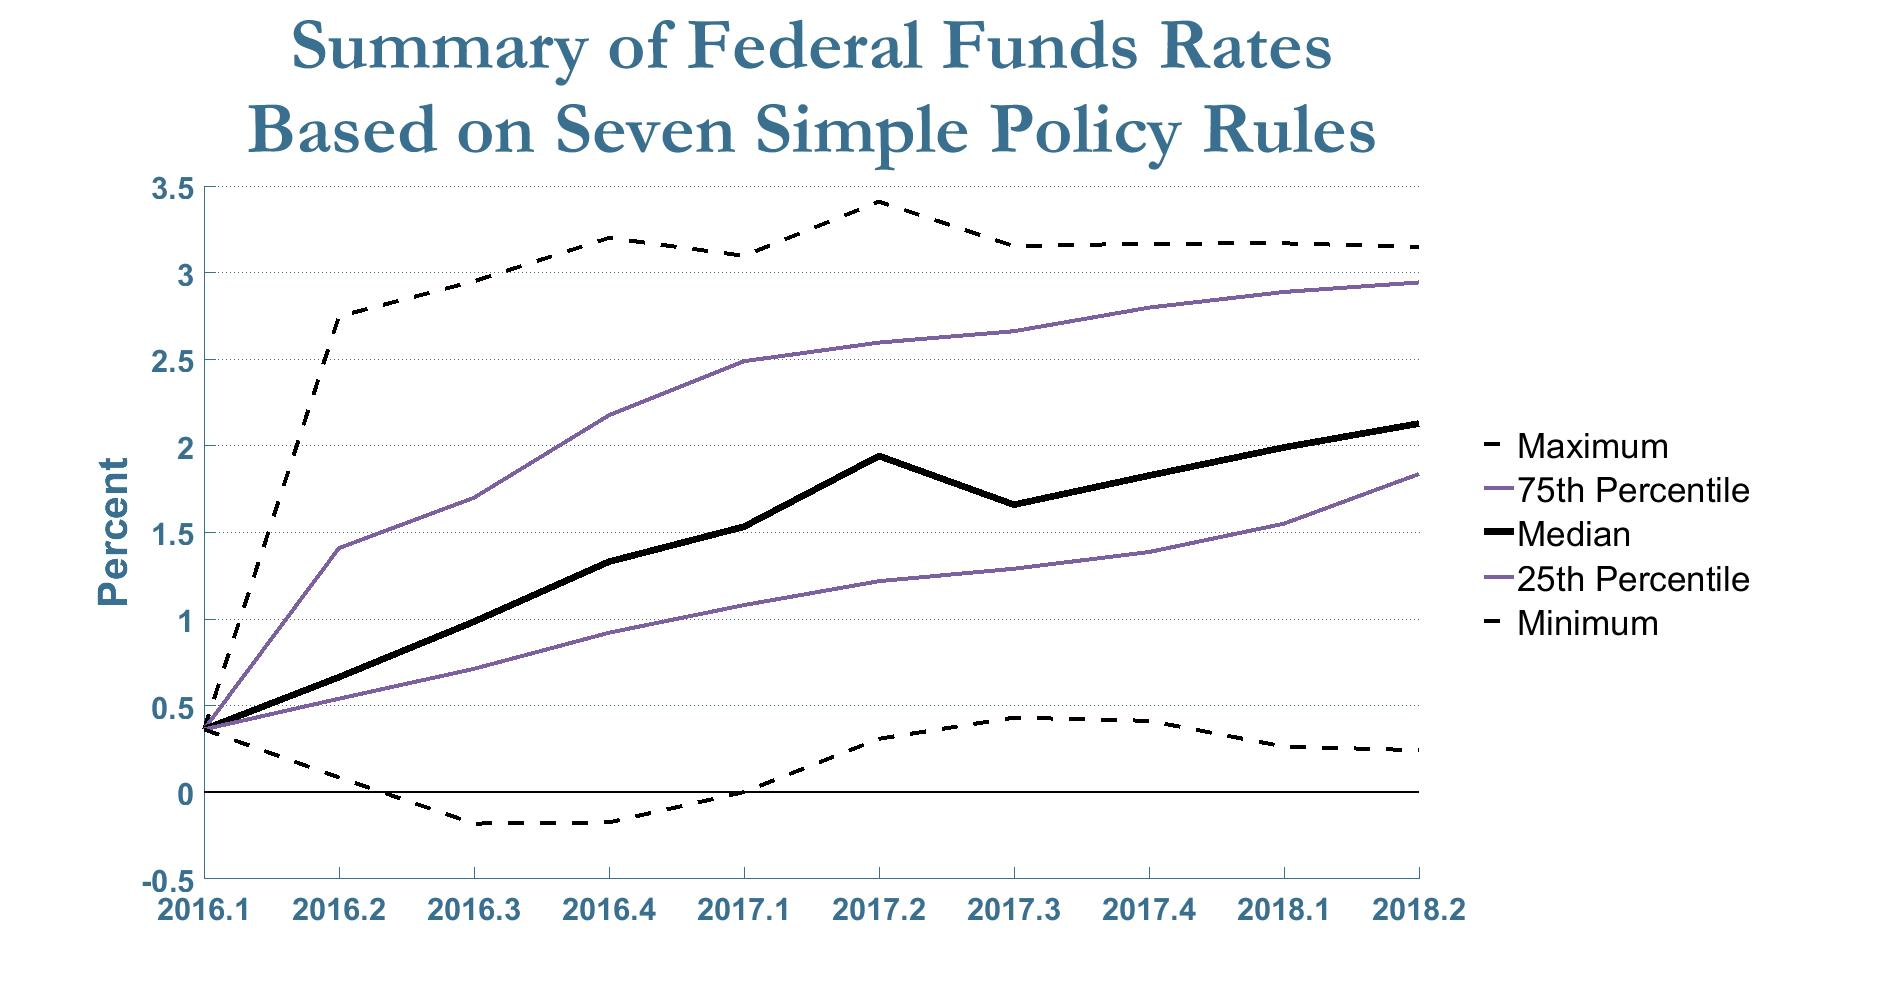 The federal funds rates use forecasts available as of June 23, 2016.